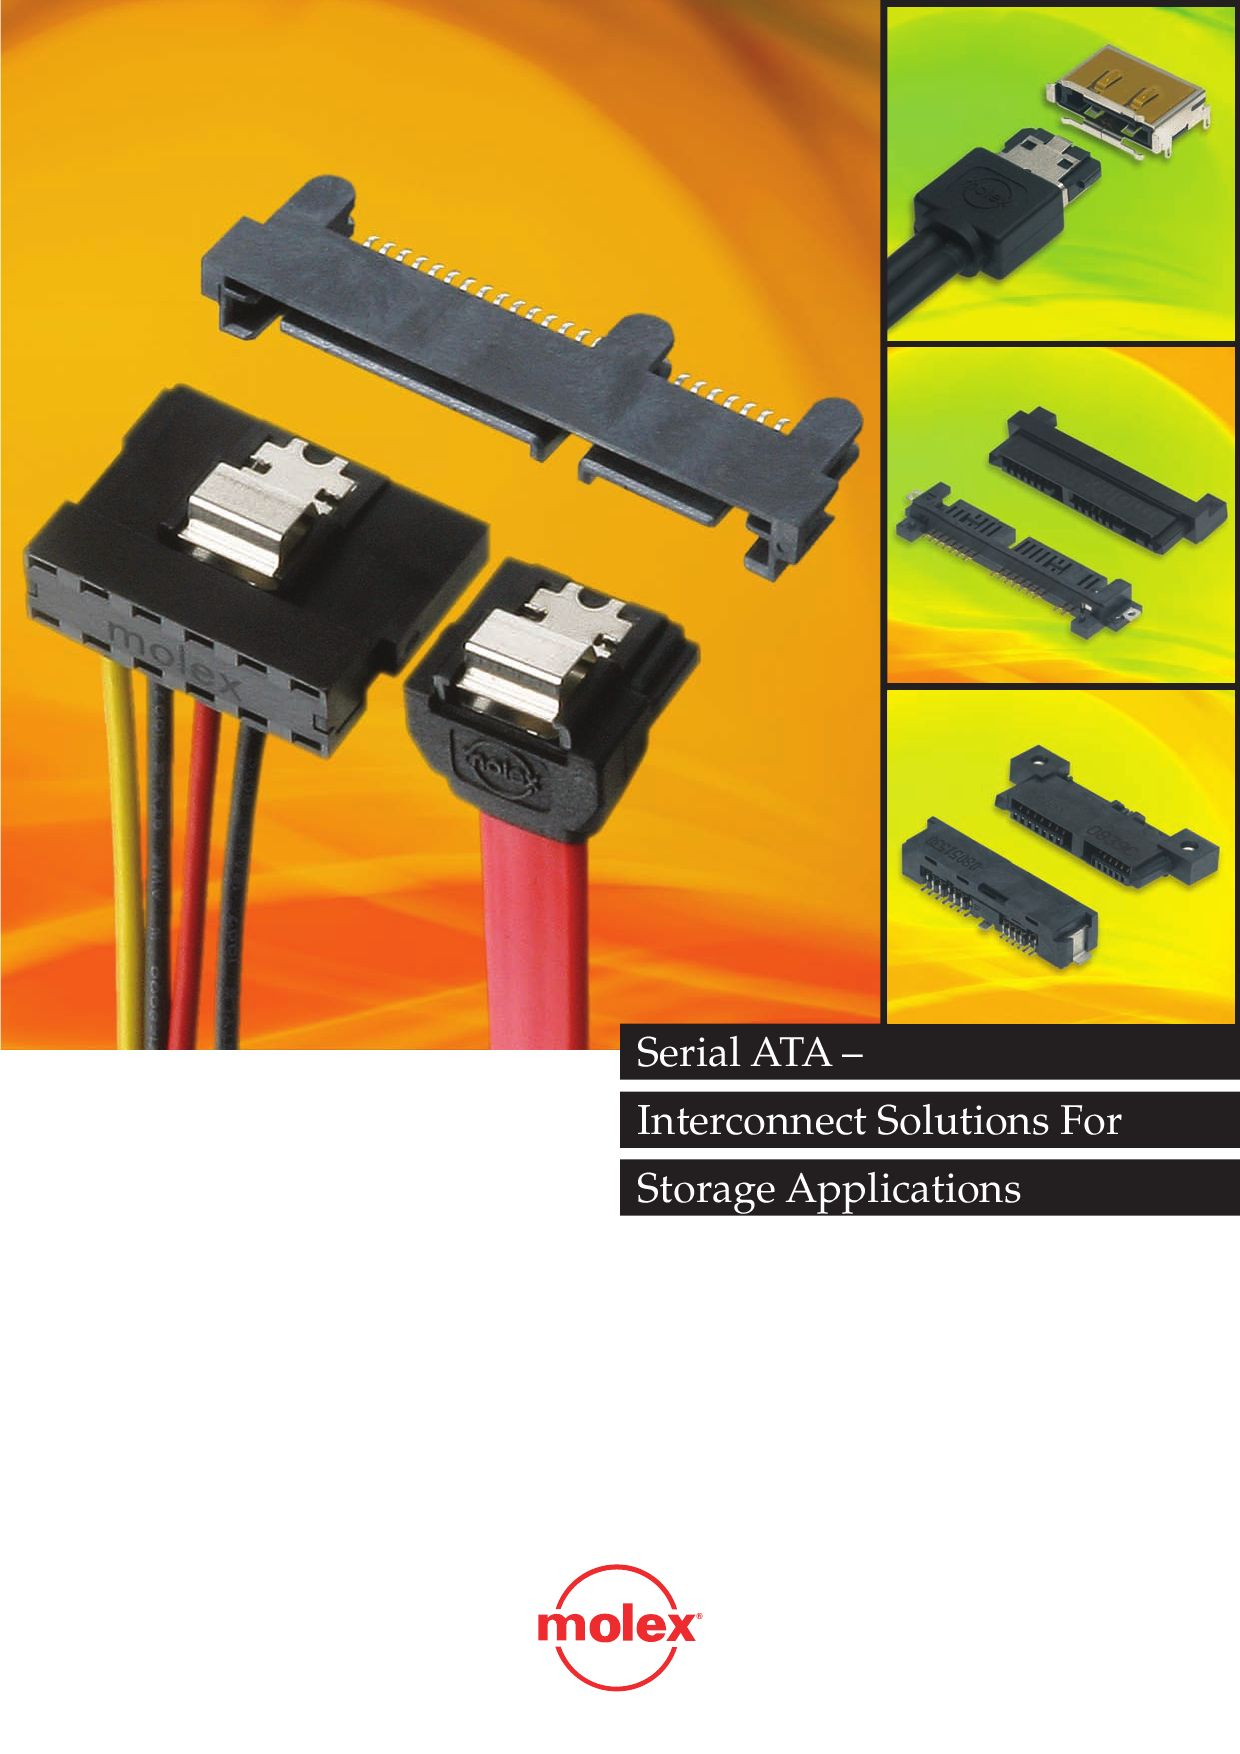 Serial Ata Products By Molex Issuu Sata Signal And Power Adapter Cable One Combo To Connect